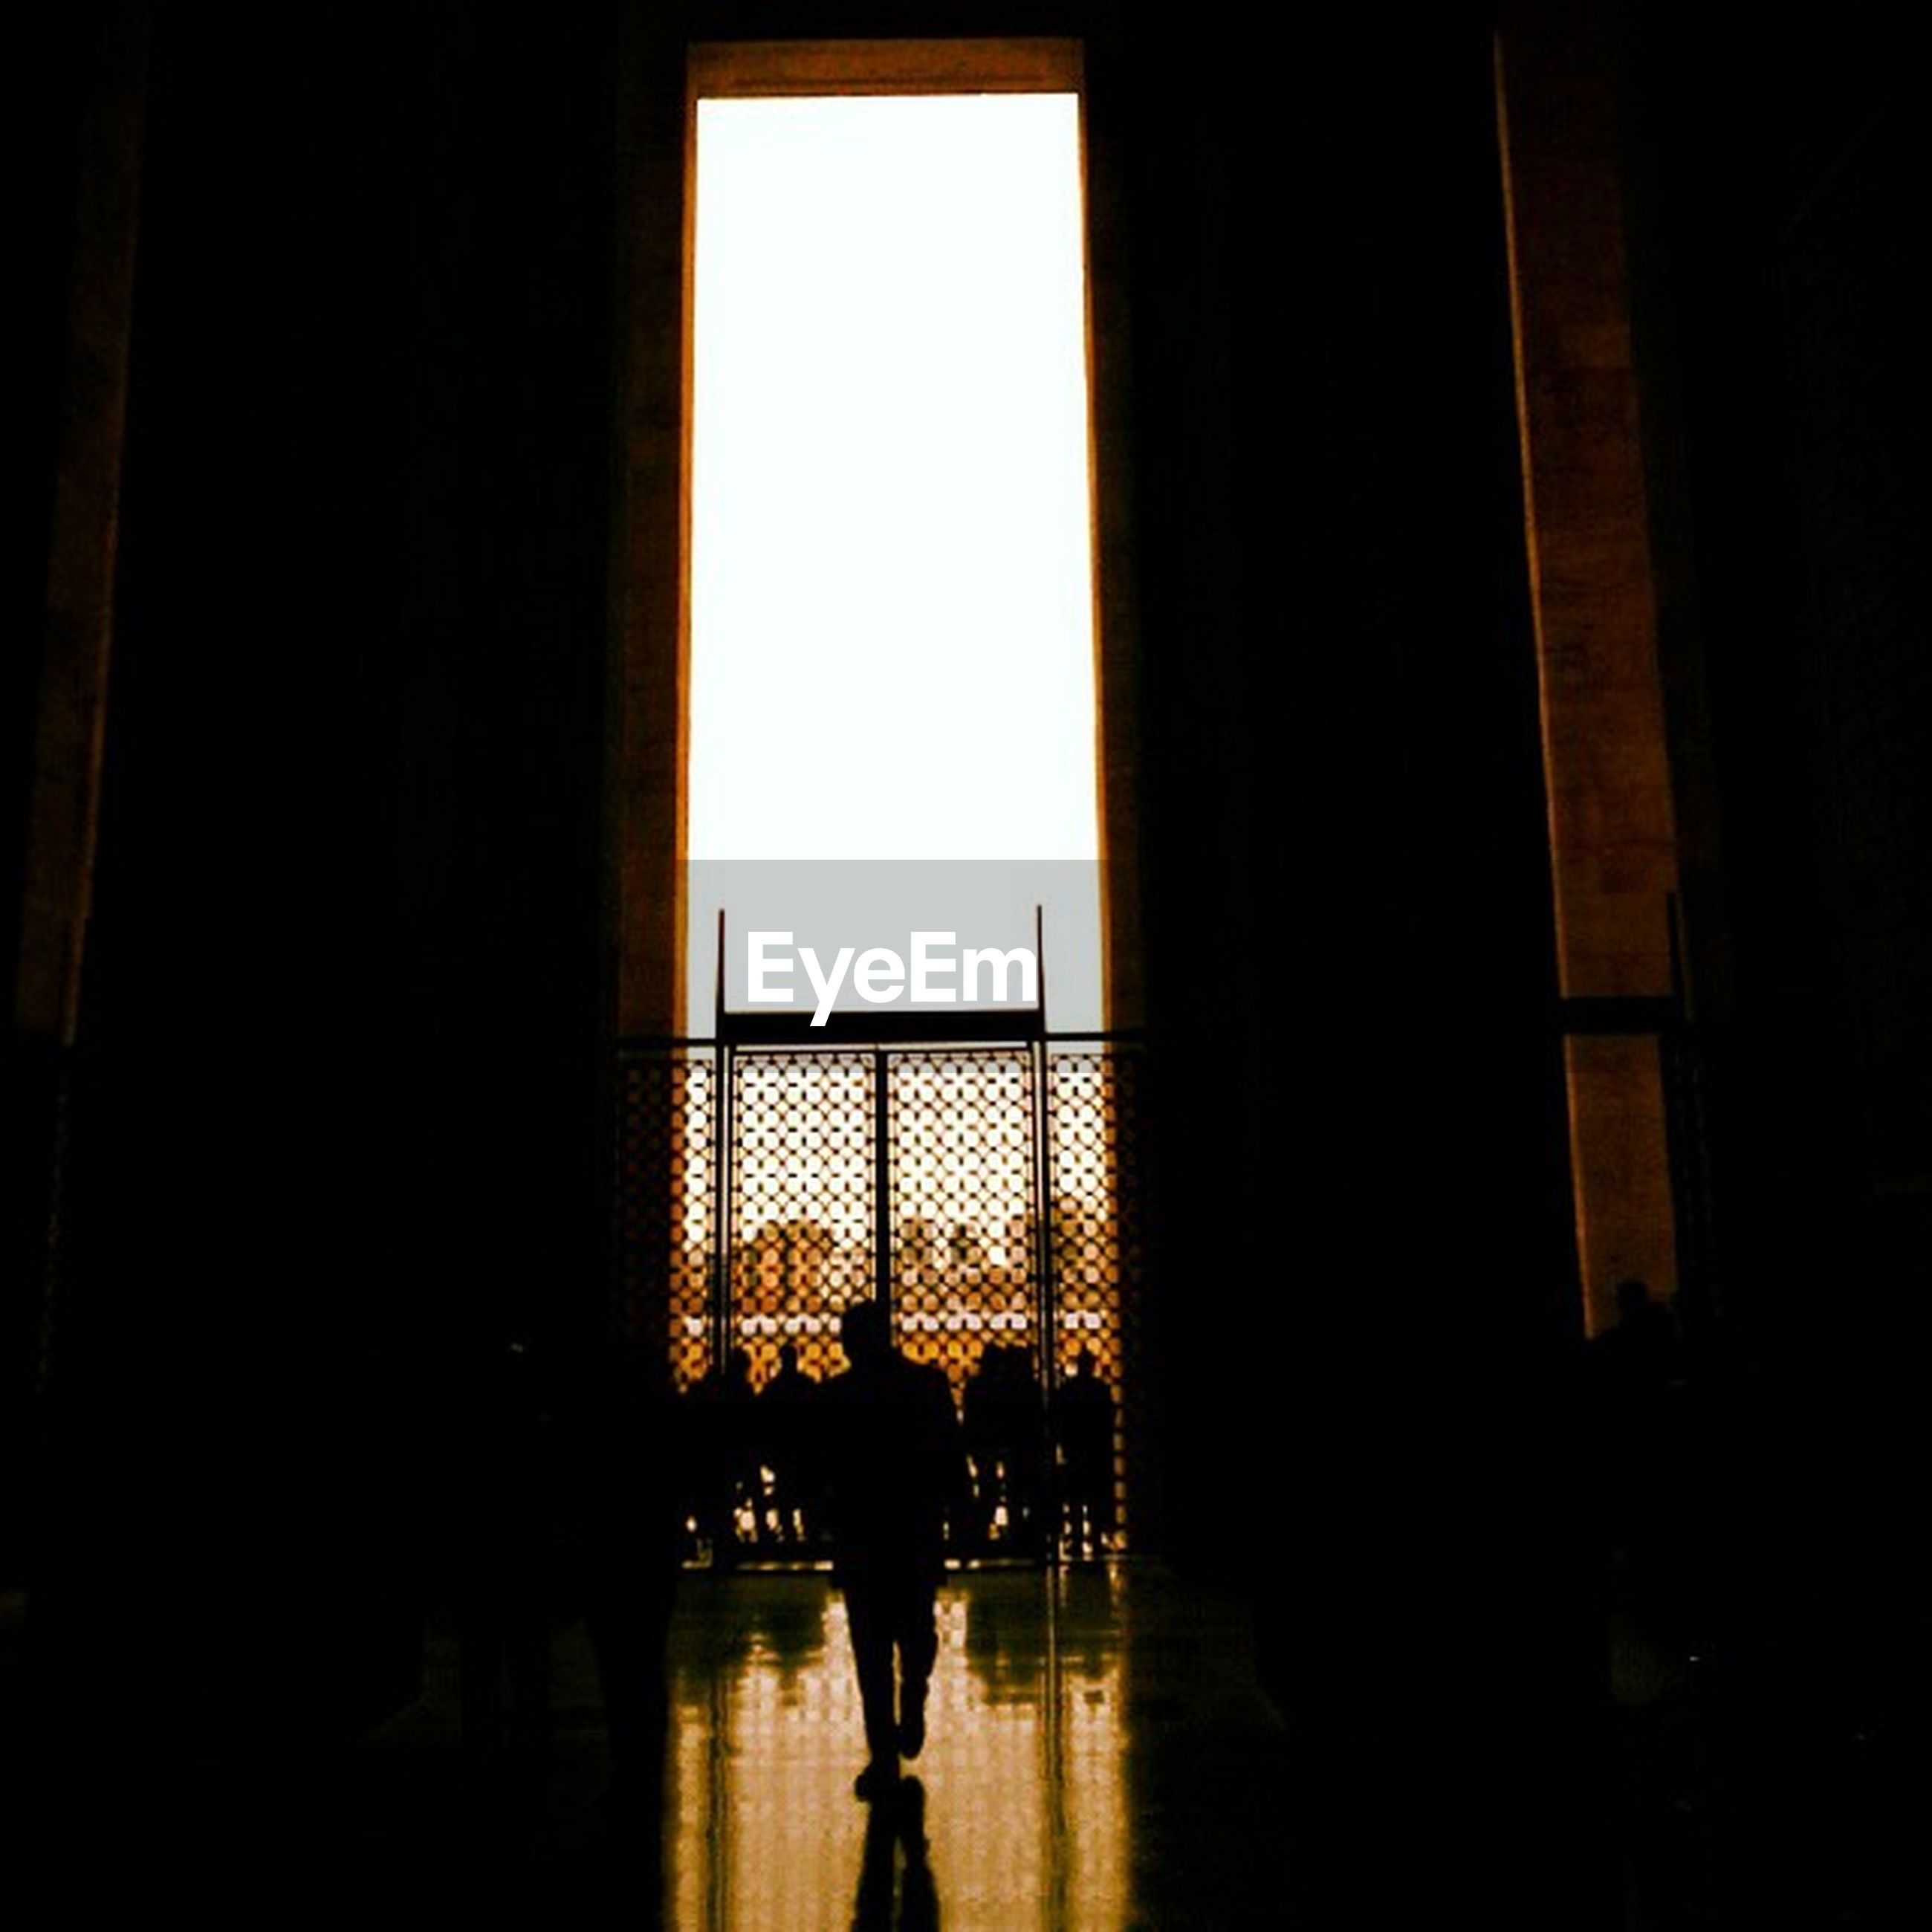 indoors, silhouette, lifestyles, men, person, architecture, leisure activity, built structure, walking, window, full length, rear view, standing, reflection, glass - material, togetherness, dark, city life